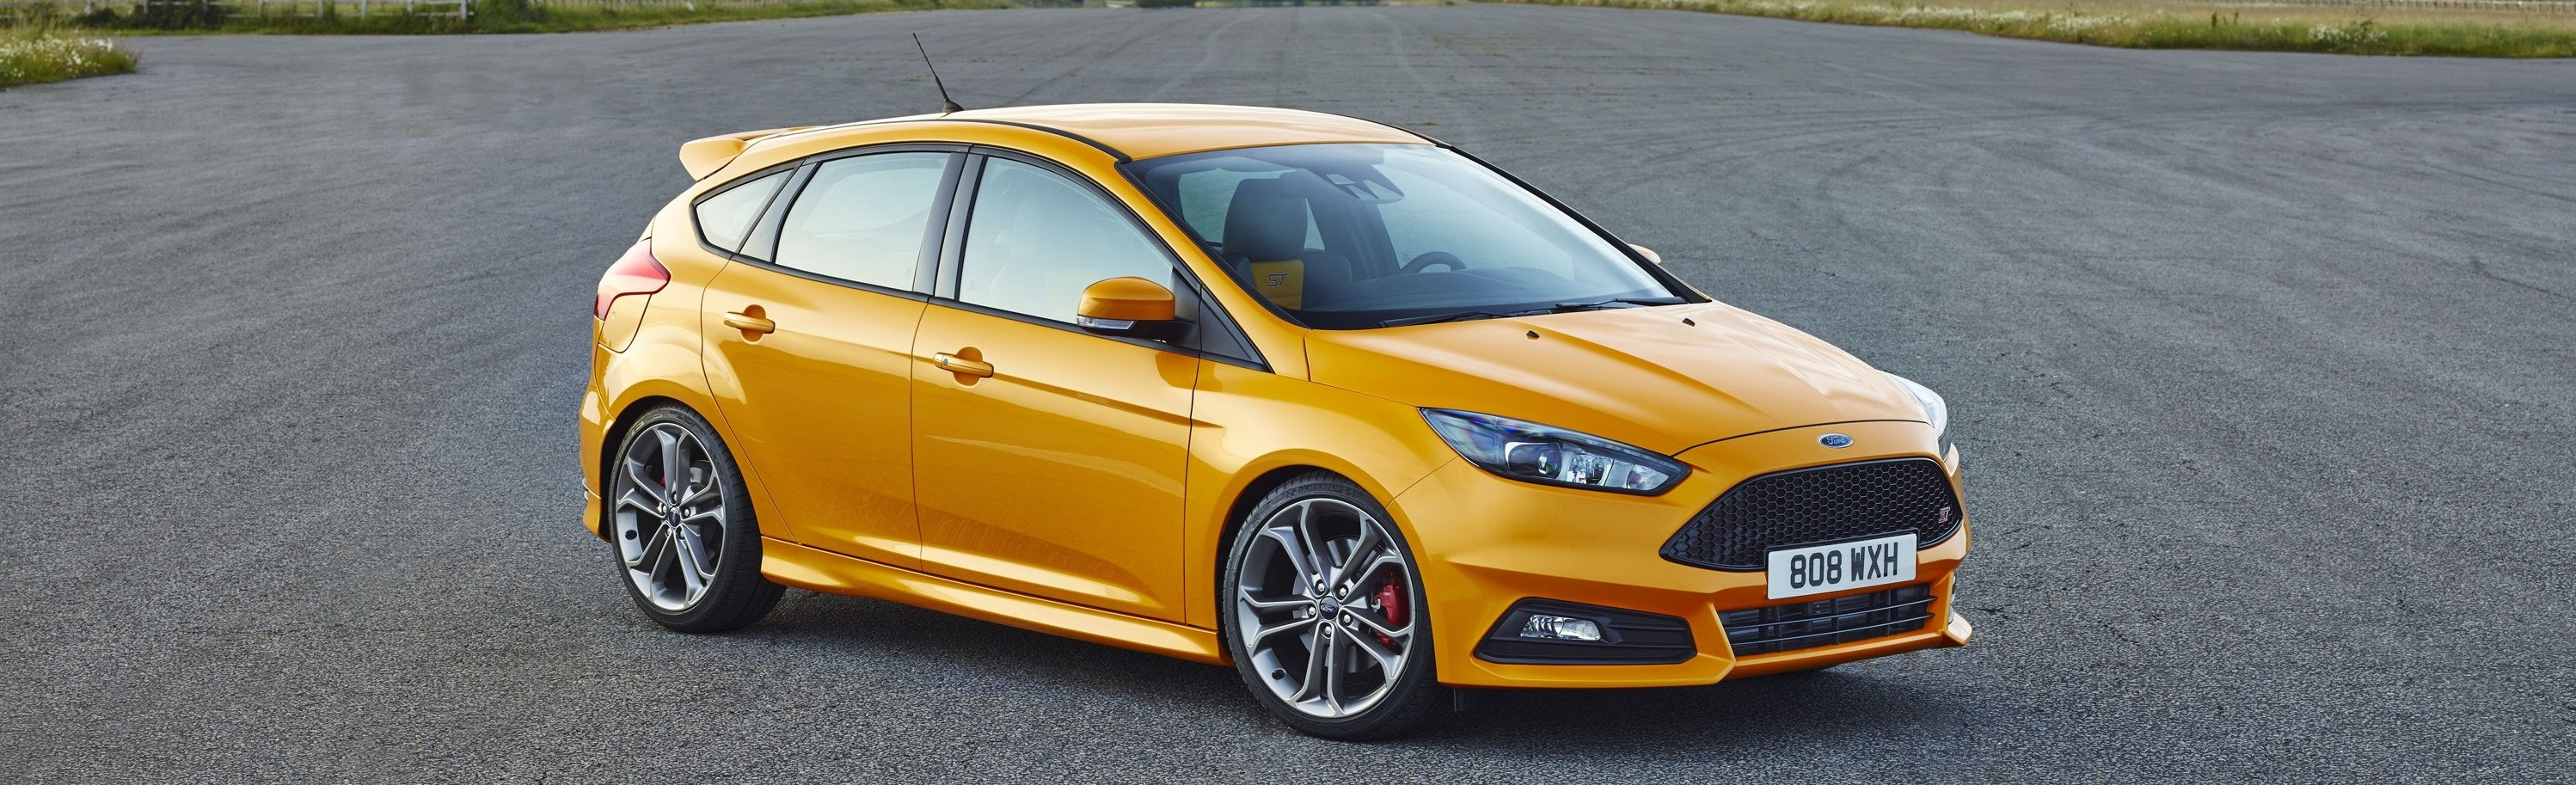 Ford Focus ST dimensions yellow front exterior